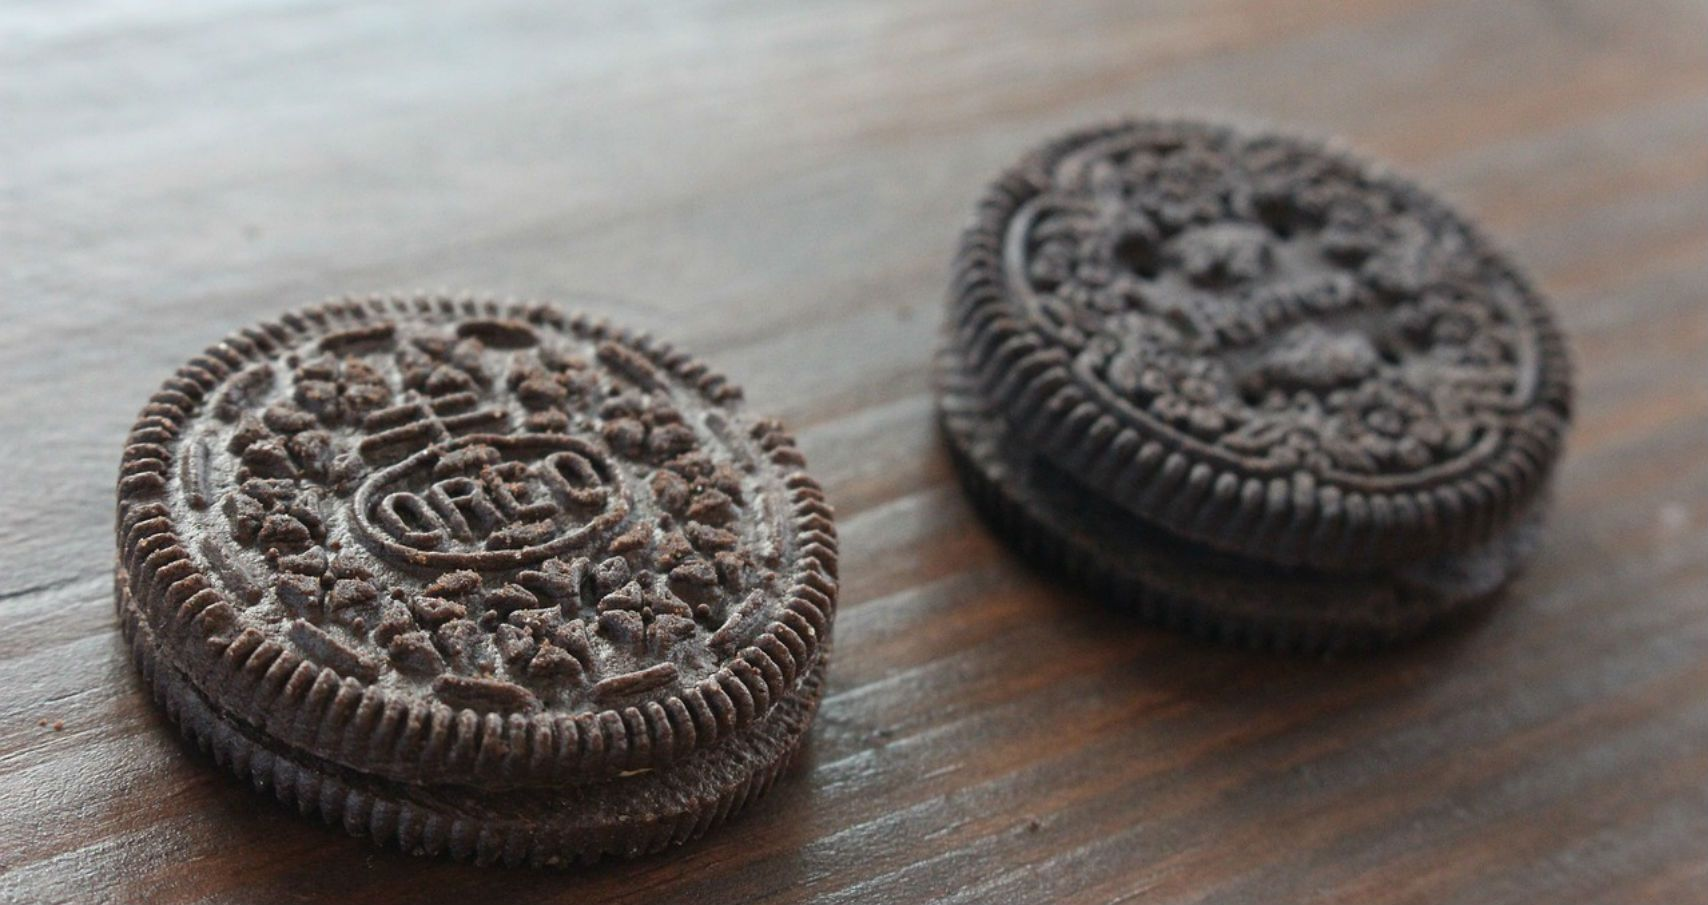 New Game Of Thrones Themed Oreos Will Be Released Just In Time For